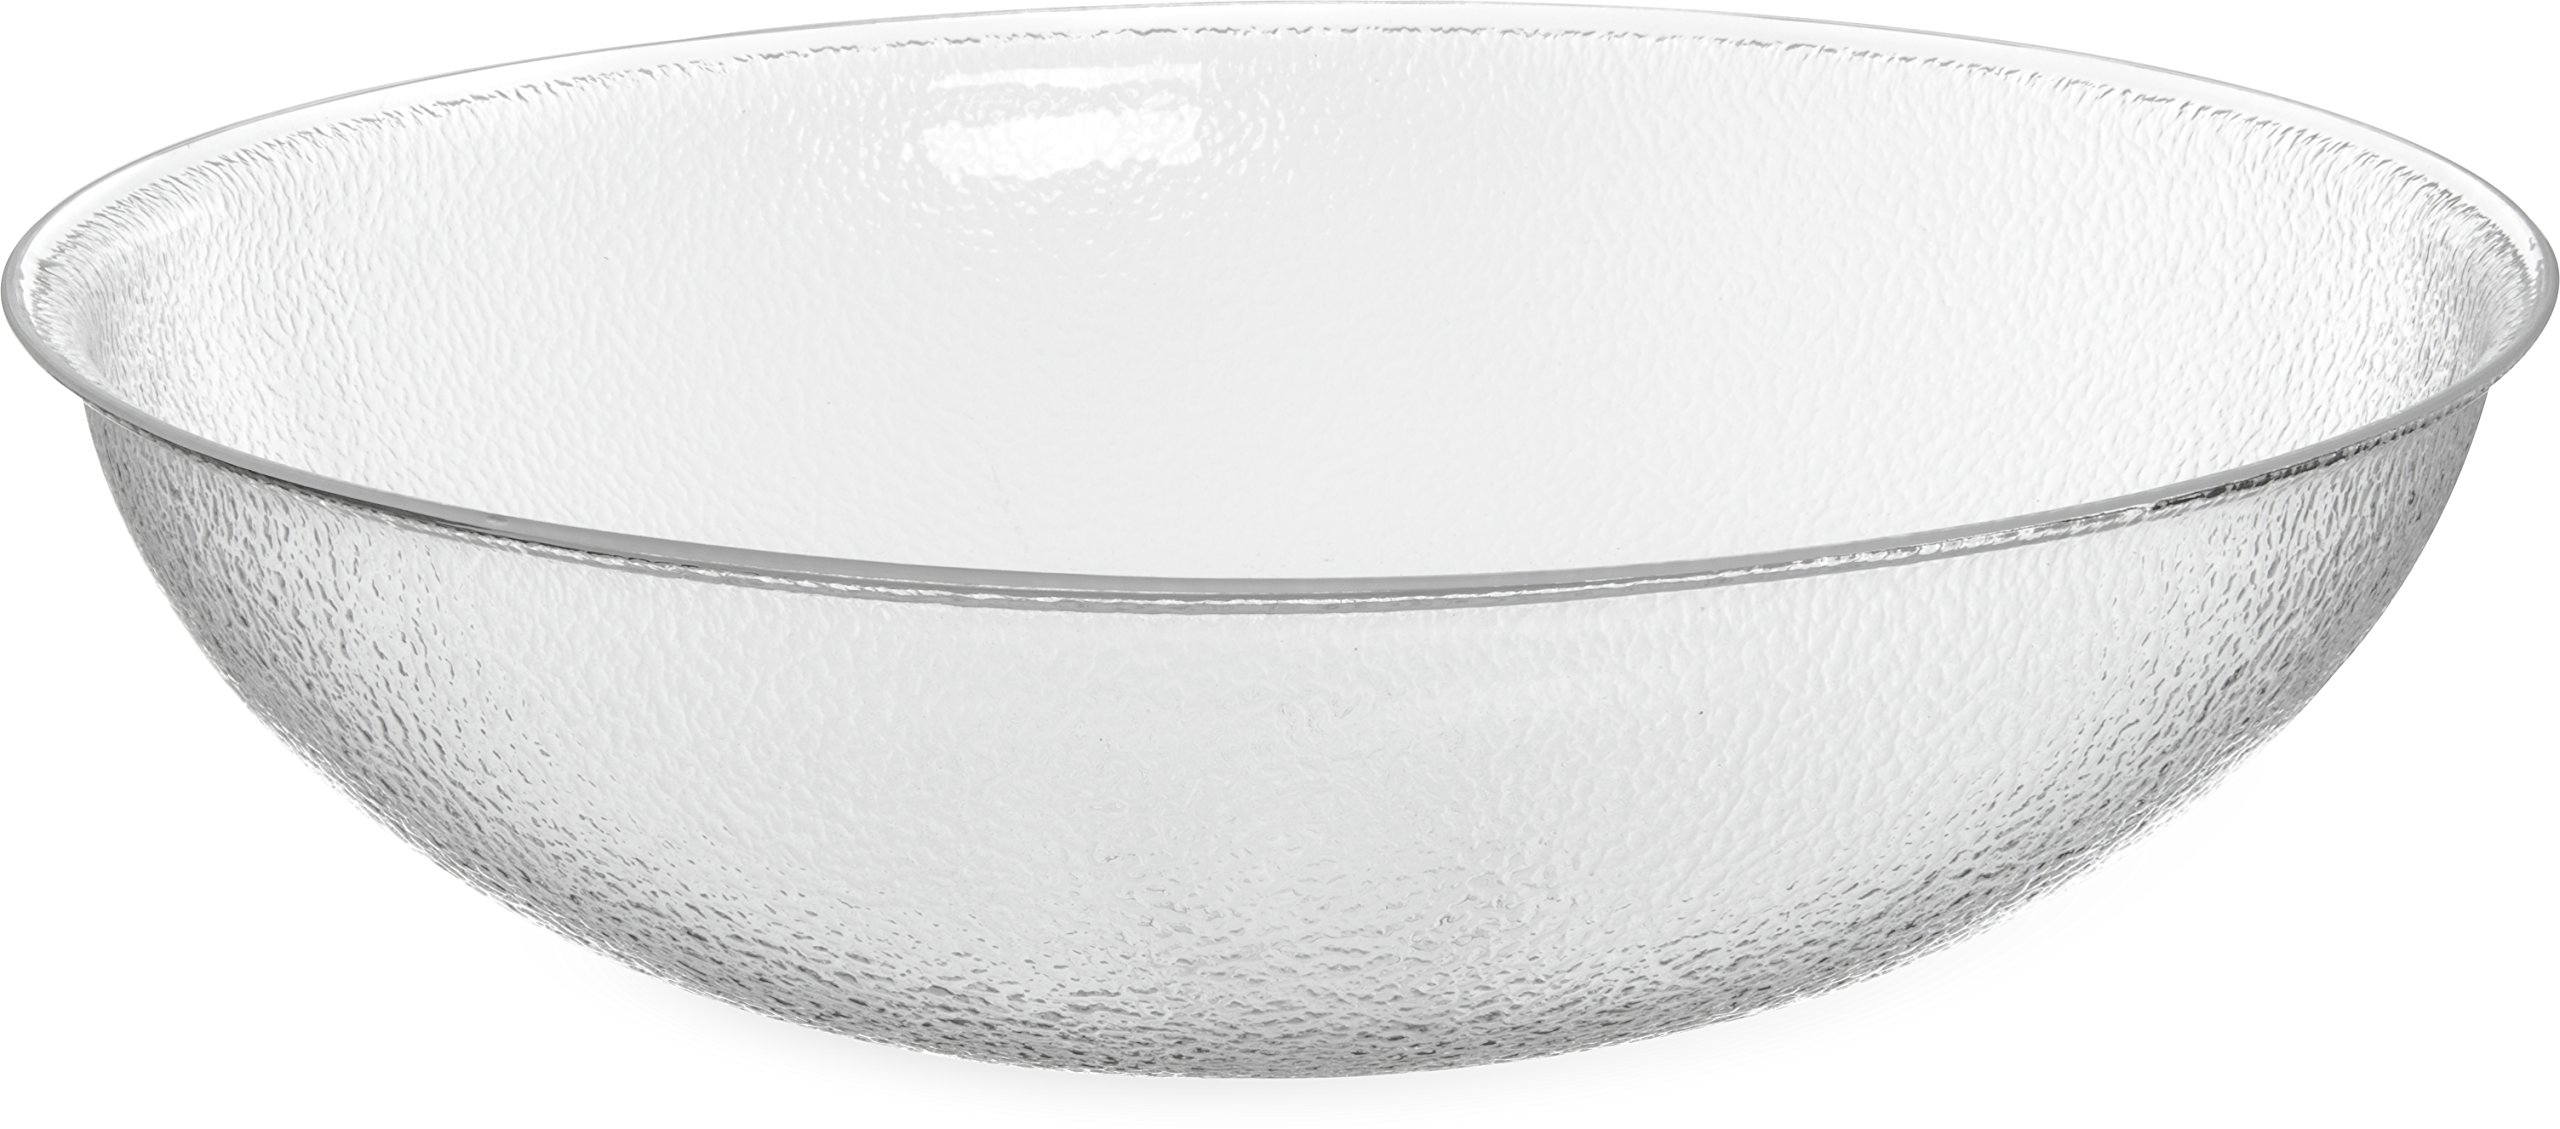 Carlisle SP2207 Acrylic Pebbled Punch Bowl, 24-qt. Capacity, 22'' Diameter x 11.12'' Height, Clear